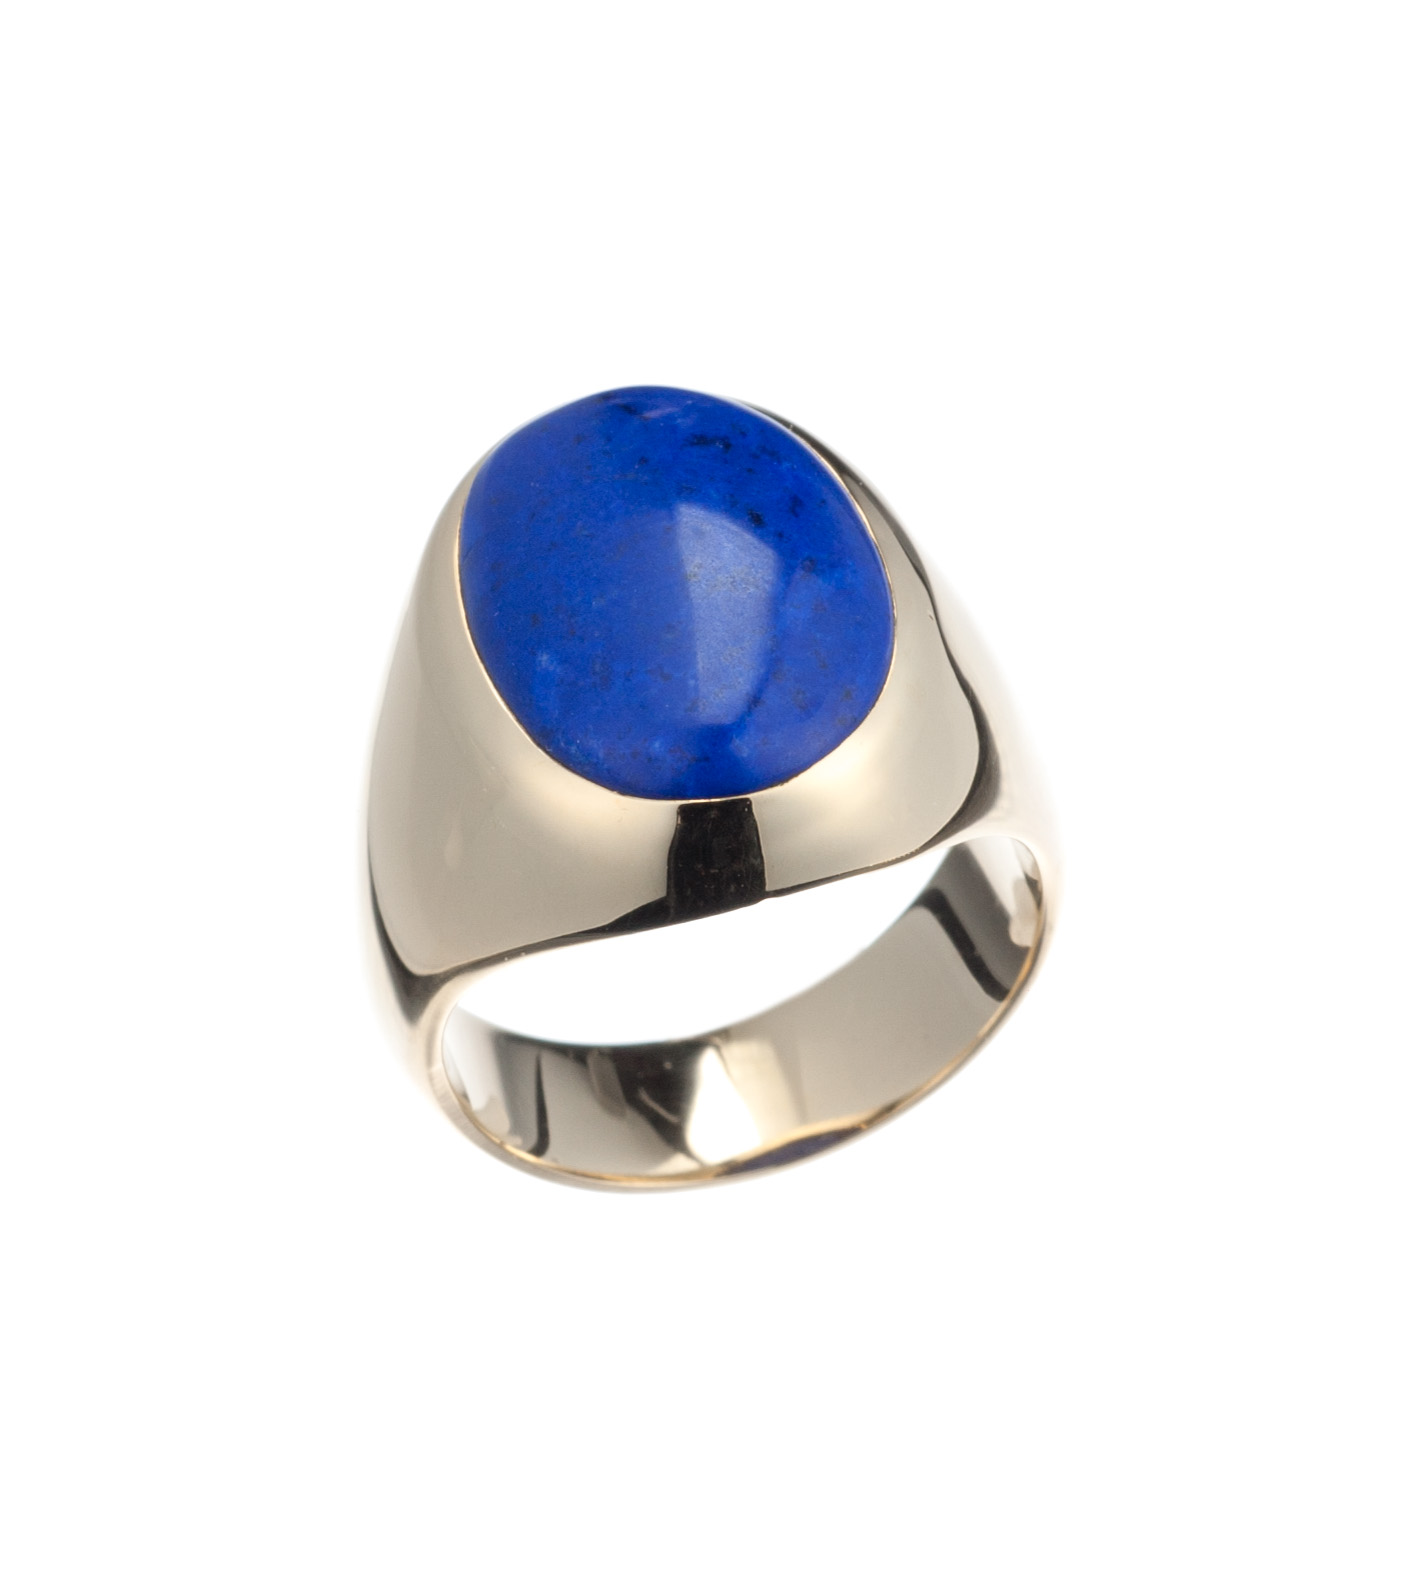 Lapis gent's ring in 14-karat yellow gold